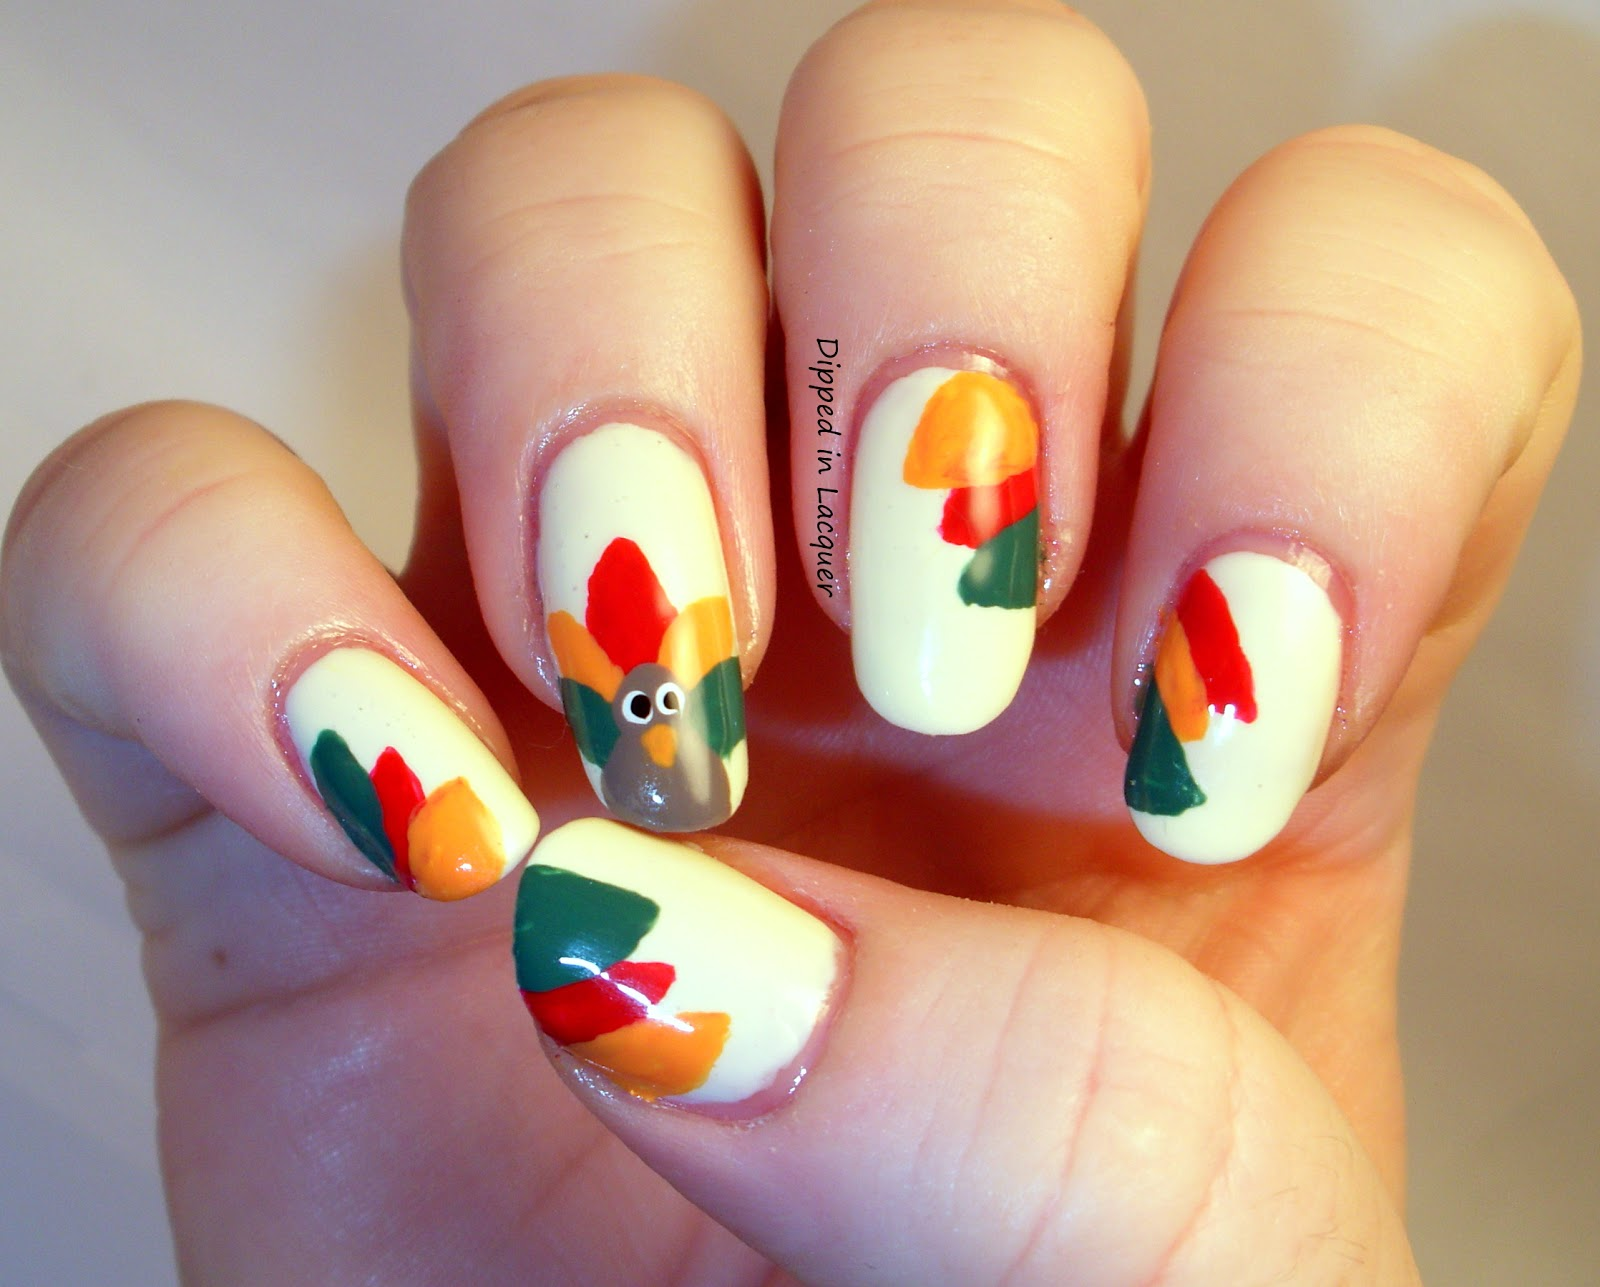 Festive thanksgiving nail designs from mane n tail photo courtesy of fashiondivadesign prinsesfo Images